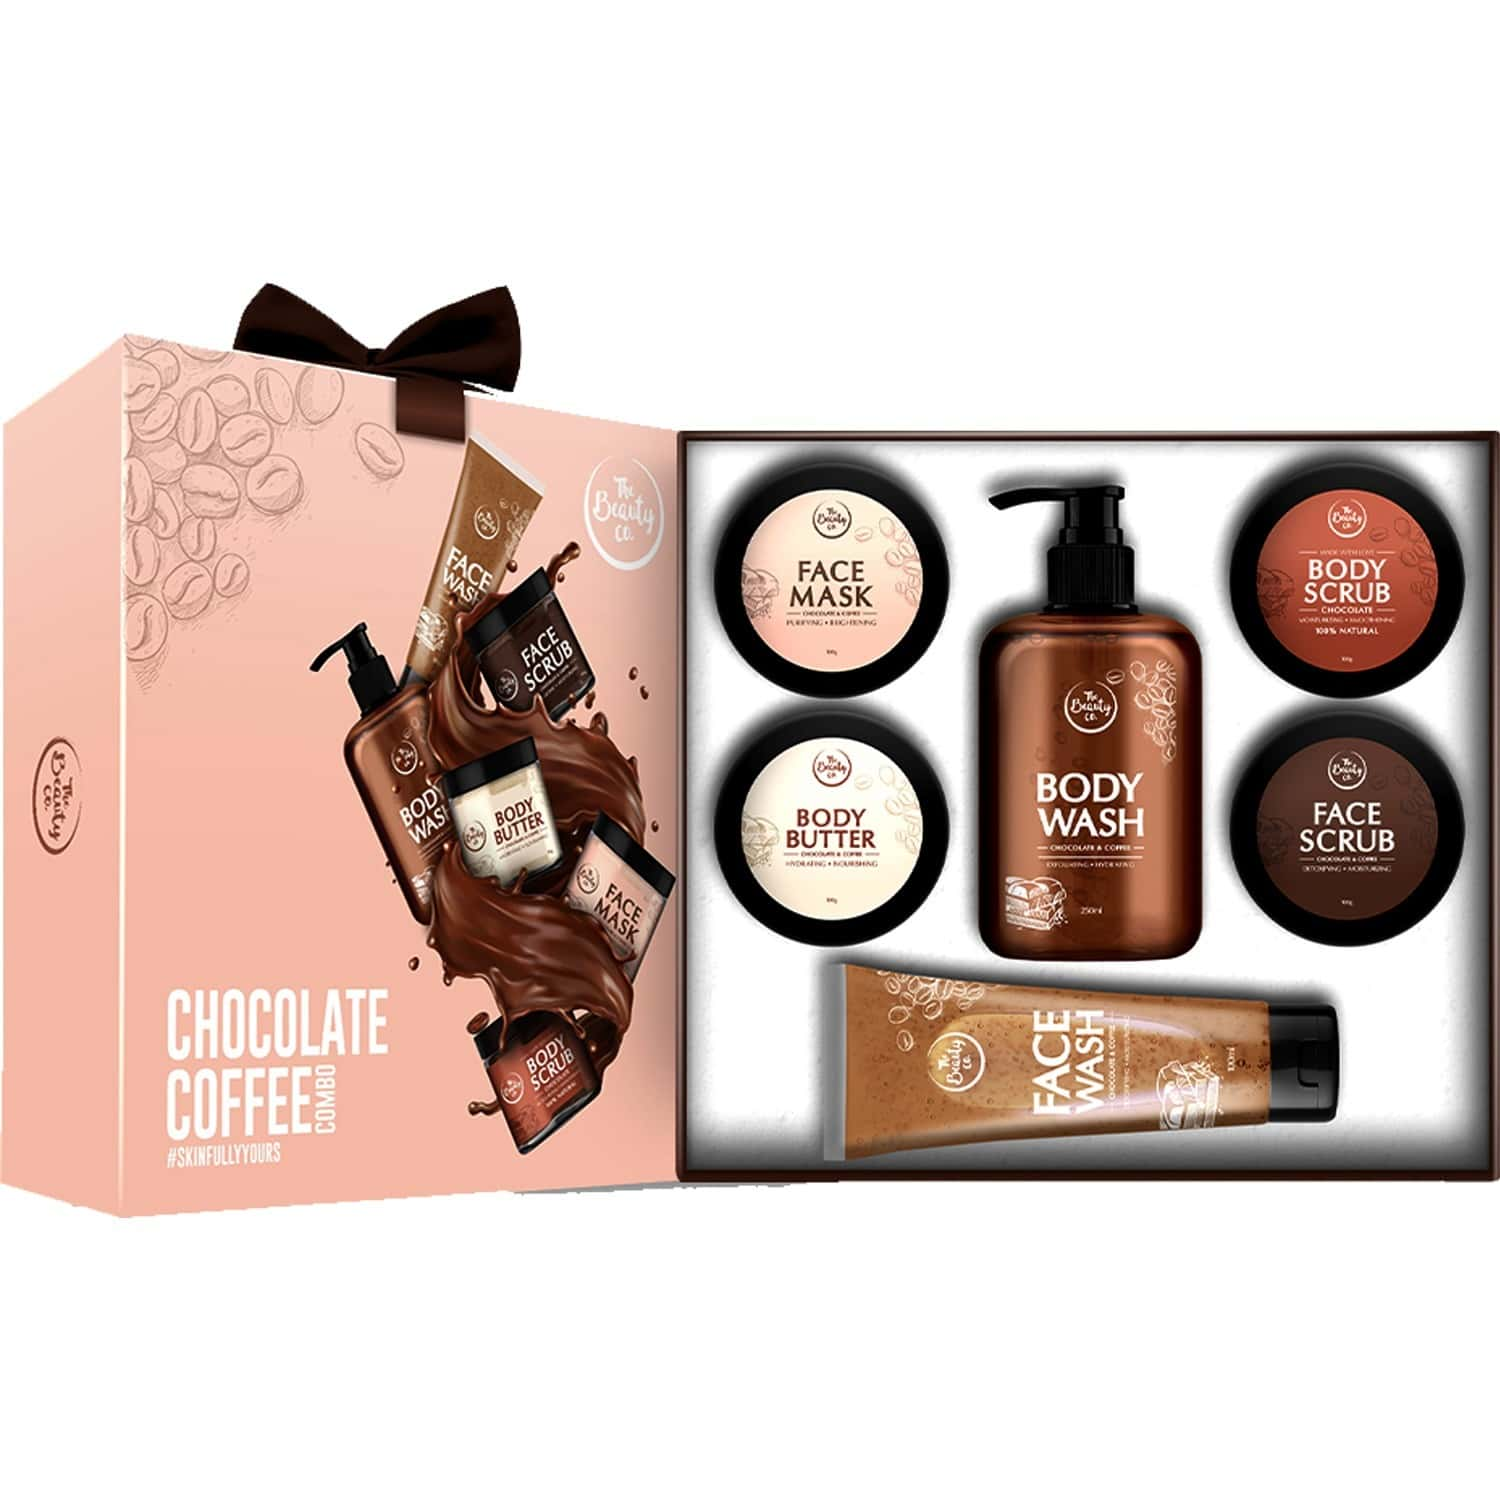 The Beauty Co. Chocolate And Coffee Gift Set (set Of 6) (body Scrub - 100gm / Body Butter - 100gm / Body Wash - 250ml / Face Mask - 100gm / Face Scrub - 100gm / Face Wash - 100ml)